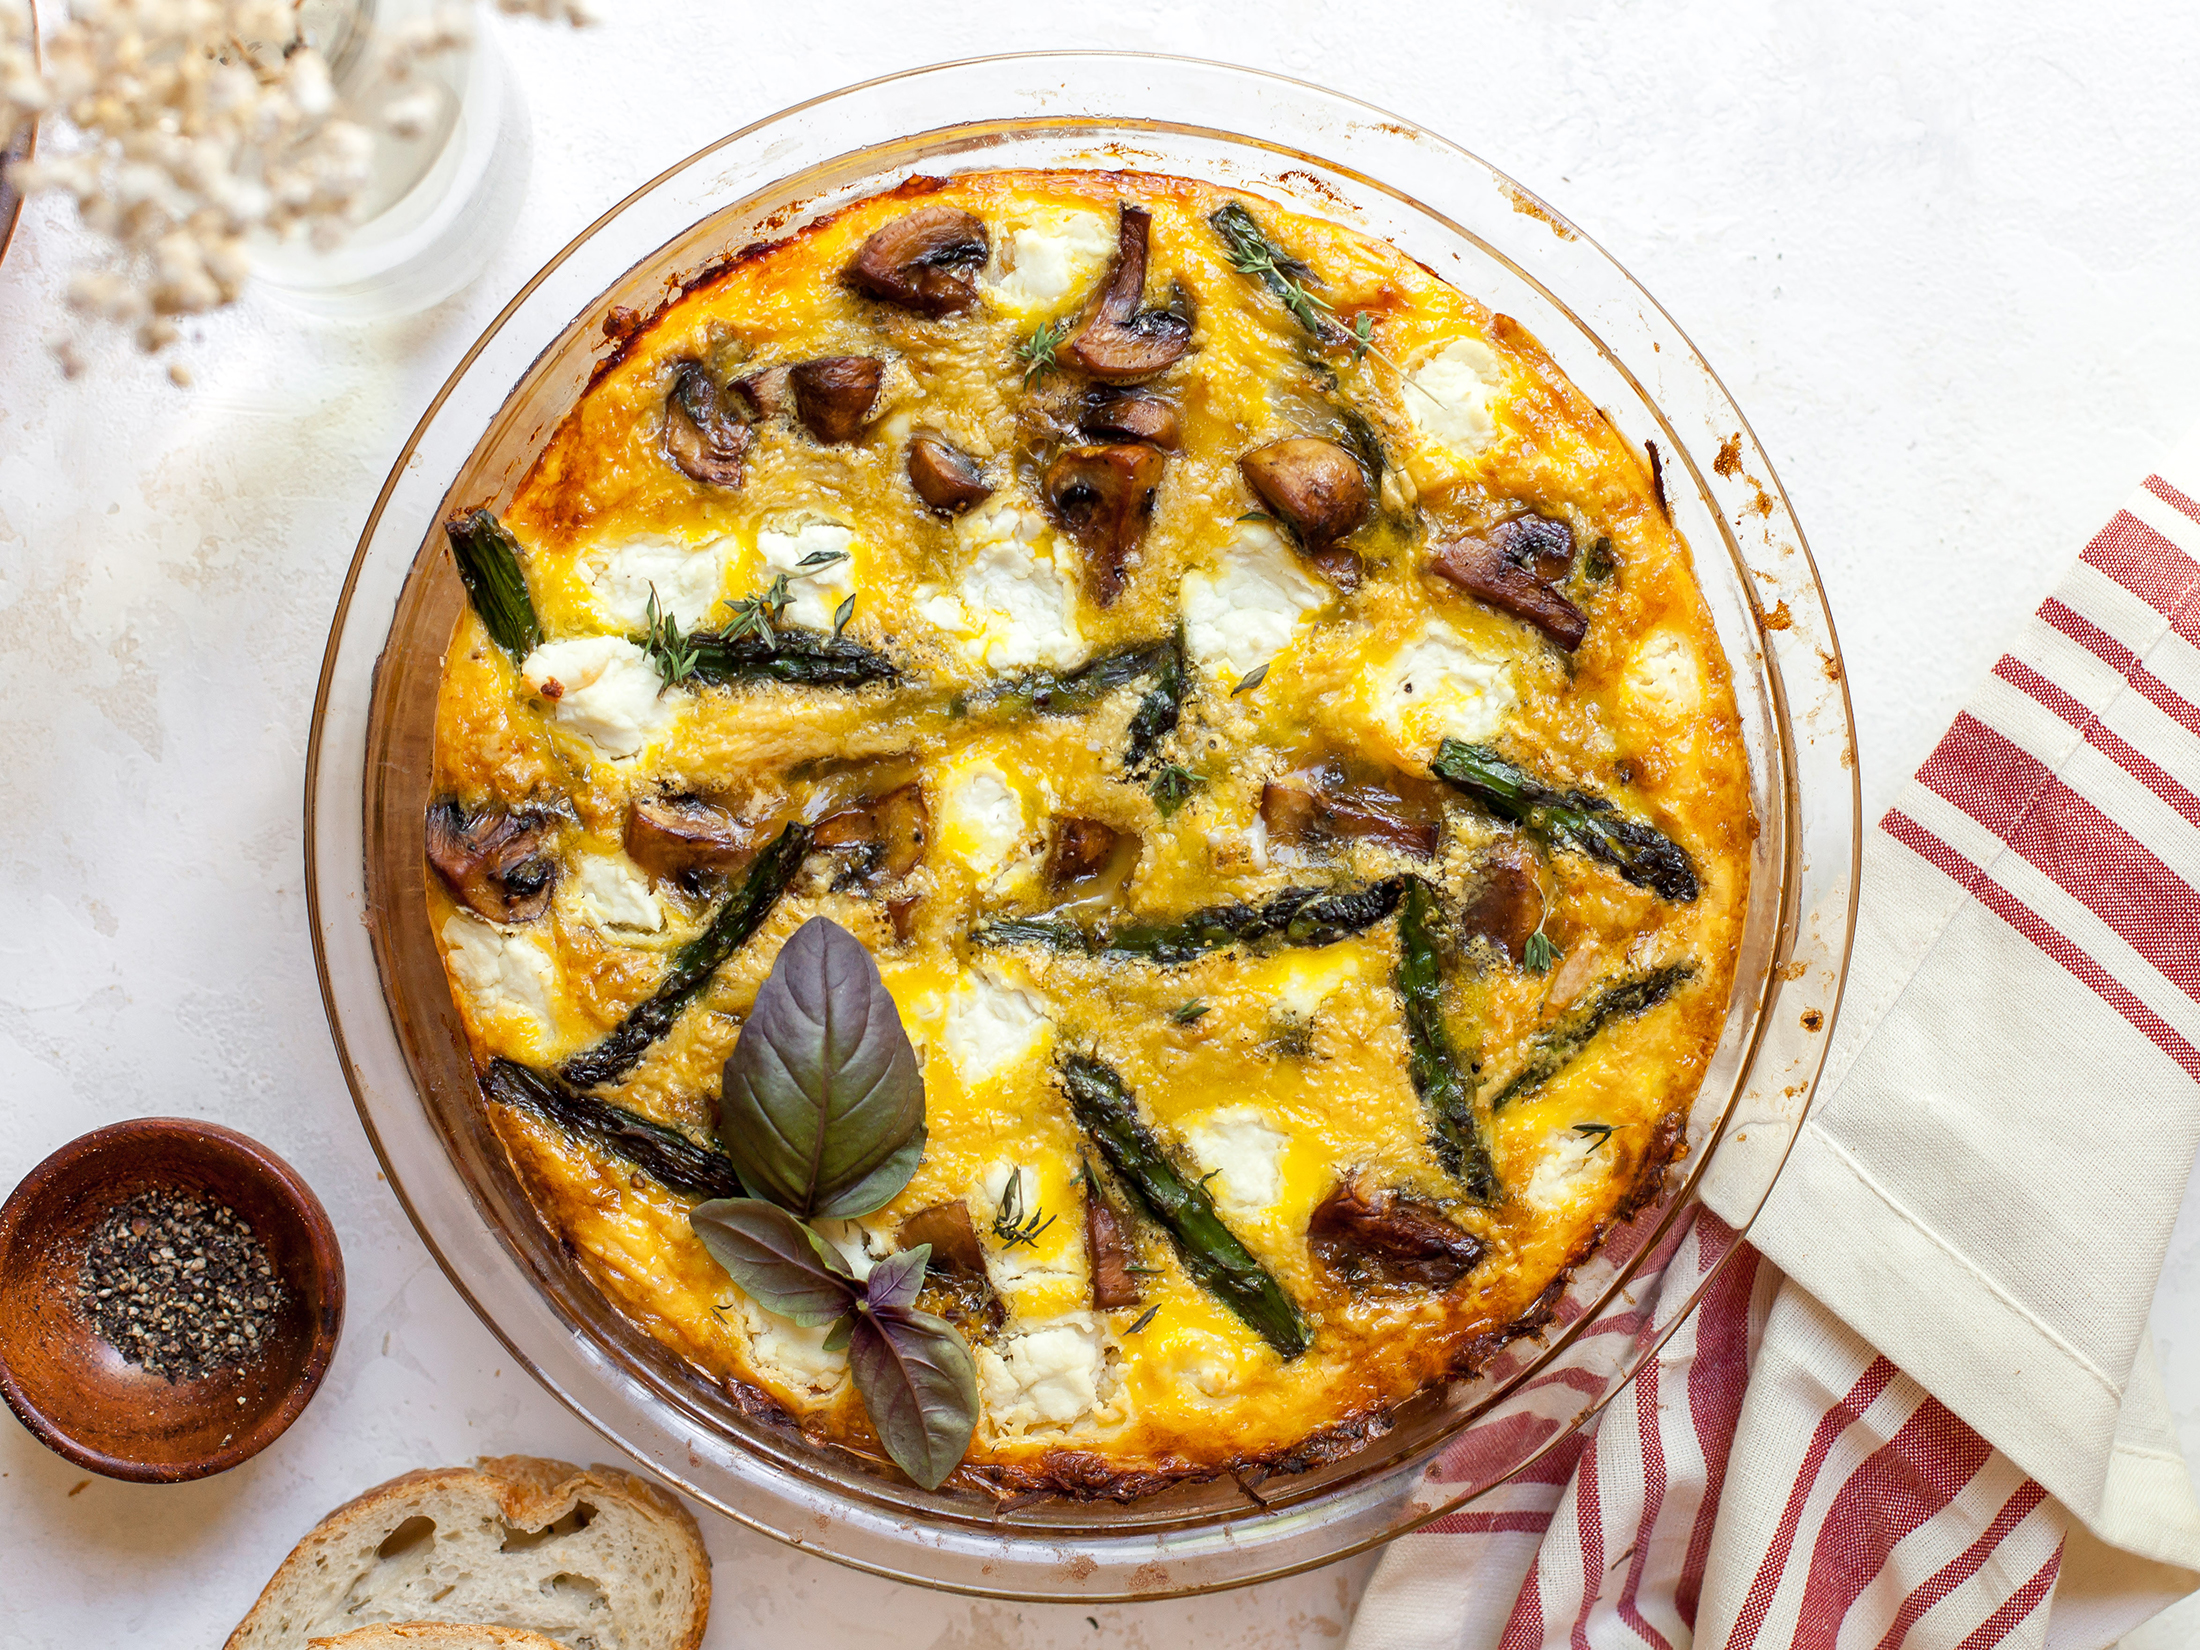 Asparagus, Mushrooms, and Goat Cheese Quiche With Spaghetti Squash Crust